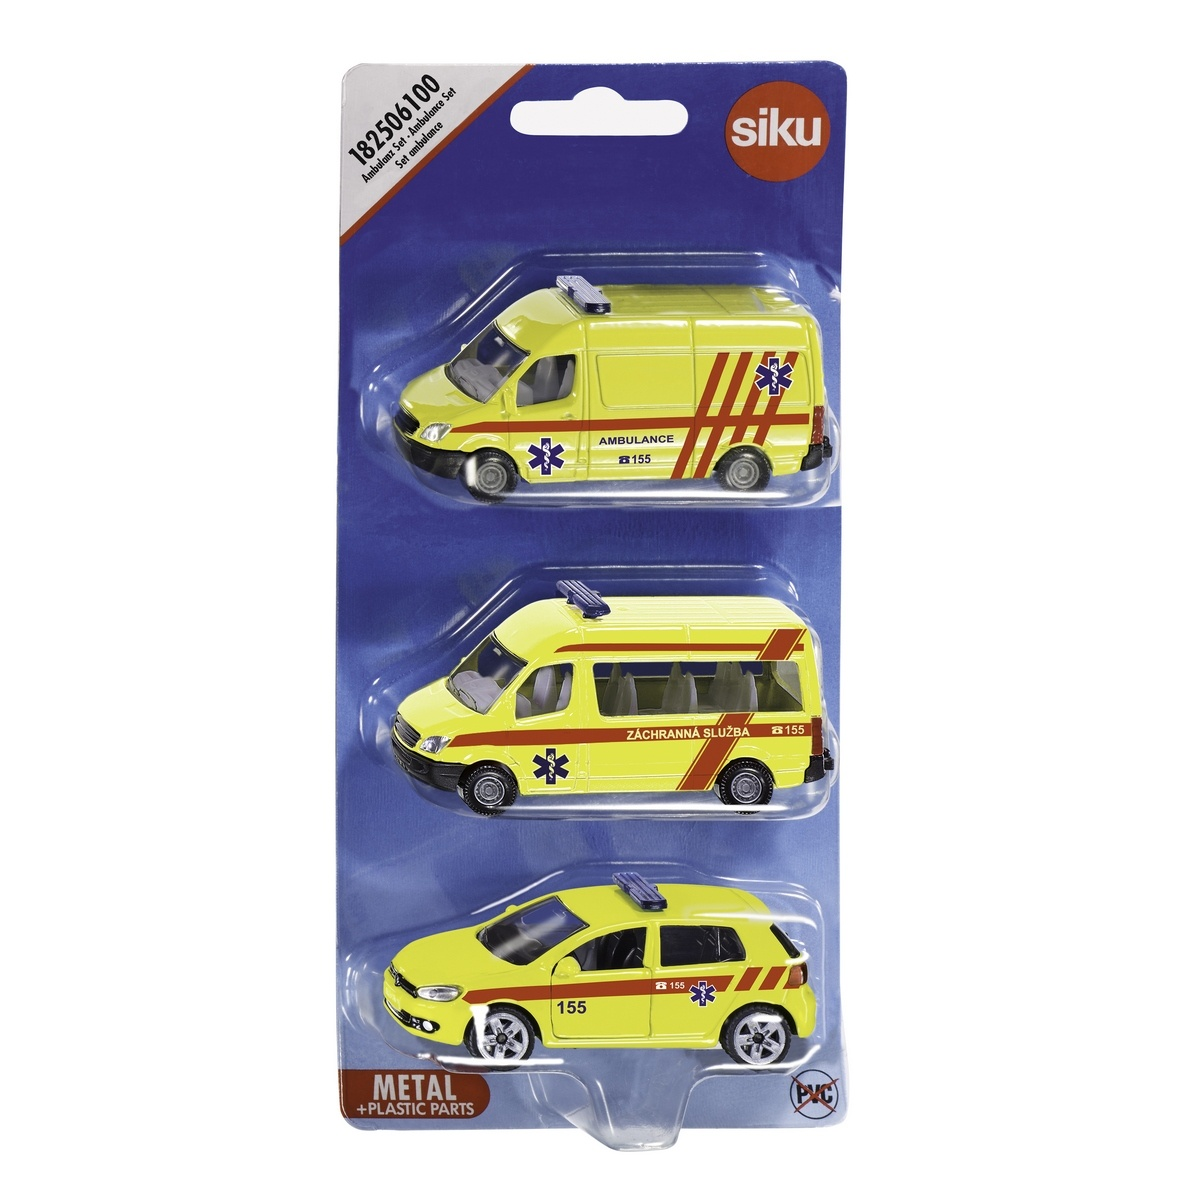 Siku Sada aut Ambulance, 3 ks